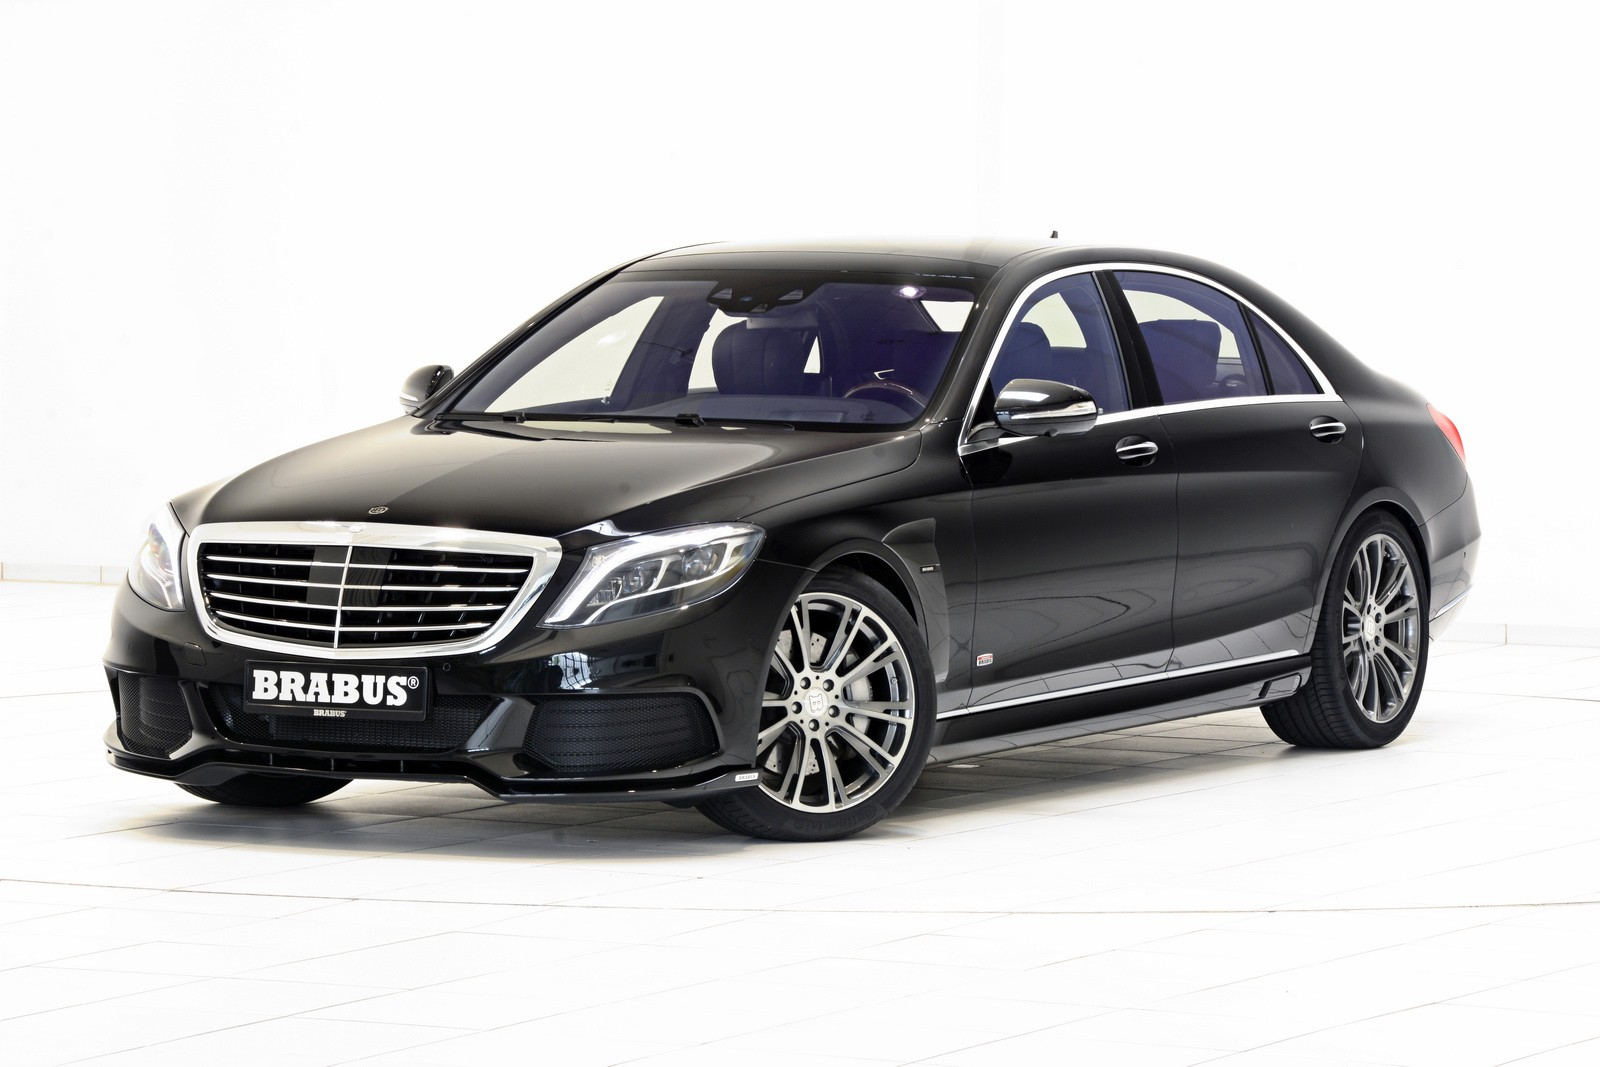 Brabus powerxtra b50 hybrid is a mercedes benz s500 plug for Mercedes benz 50